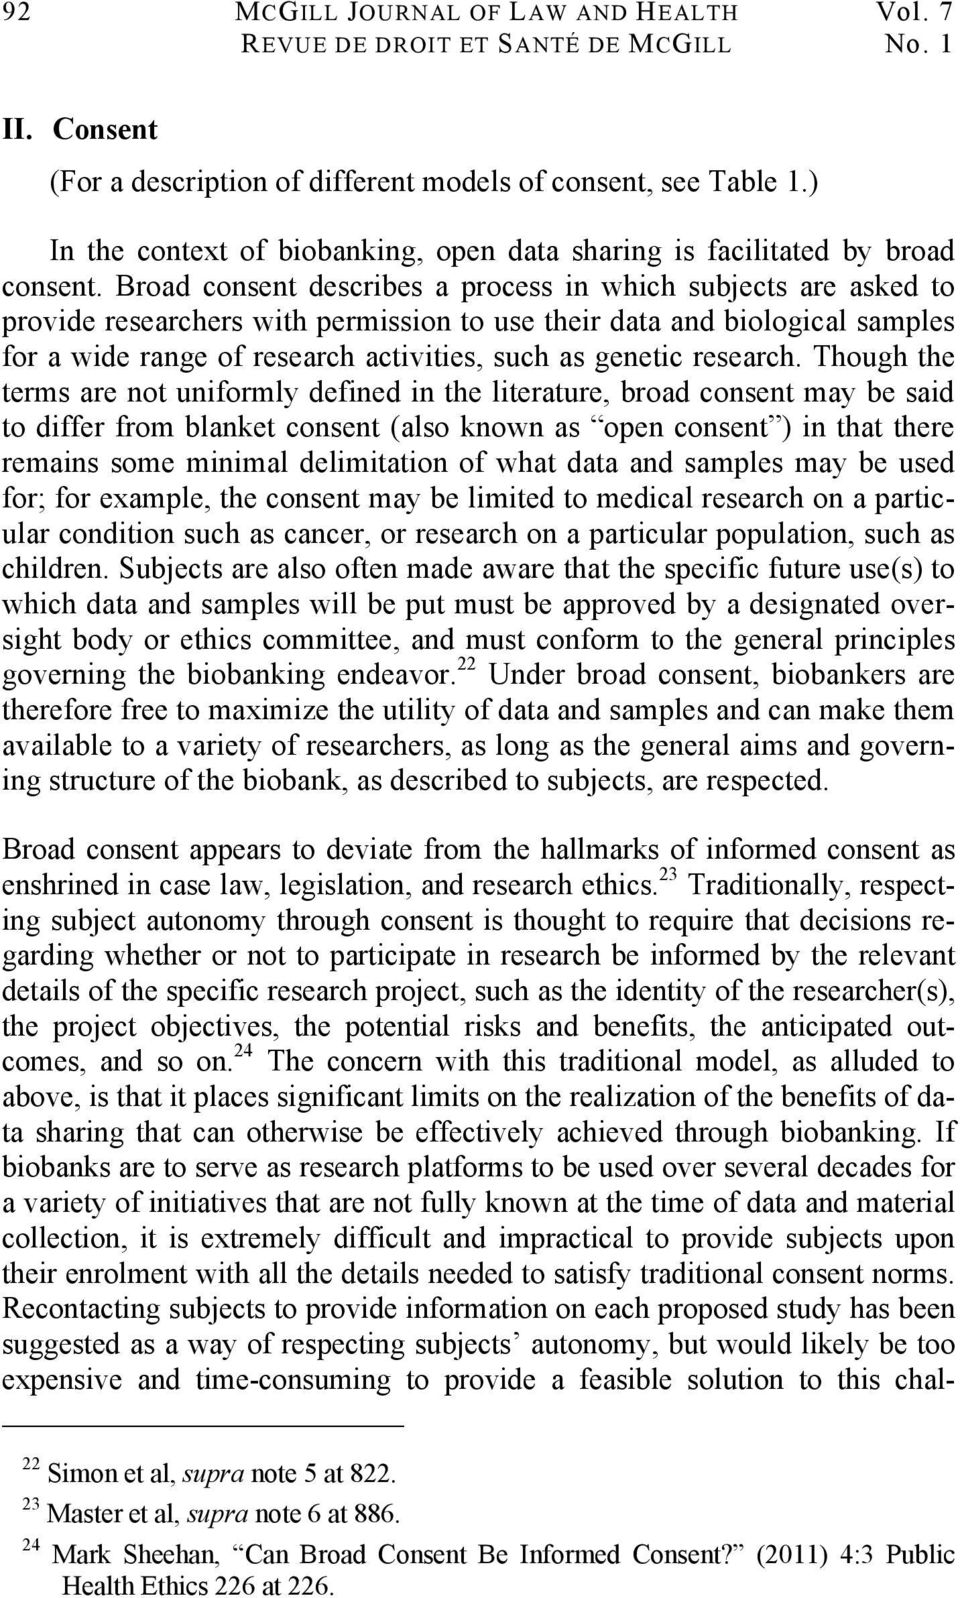 Broad consent describes a process in which subjects are asked to provide researchers with permission to use their data and biological samples for a wide range of research activities, such as genetic